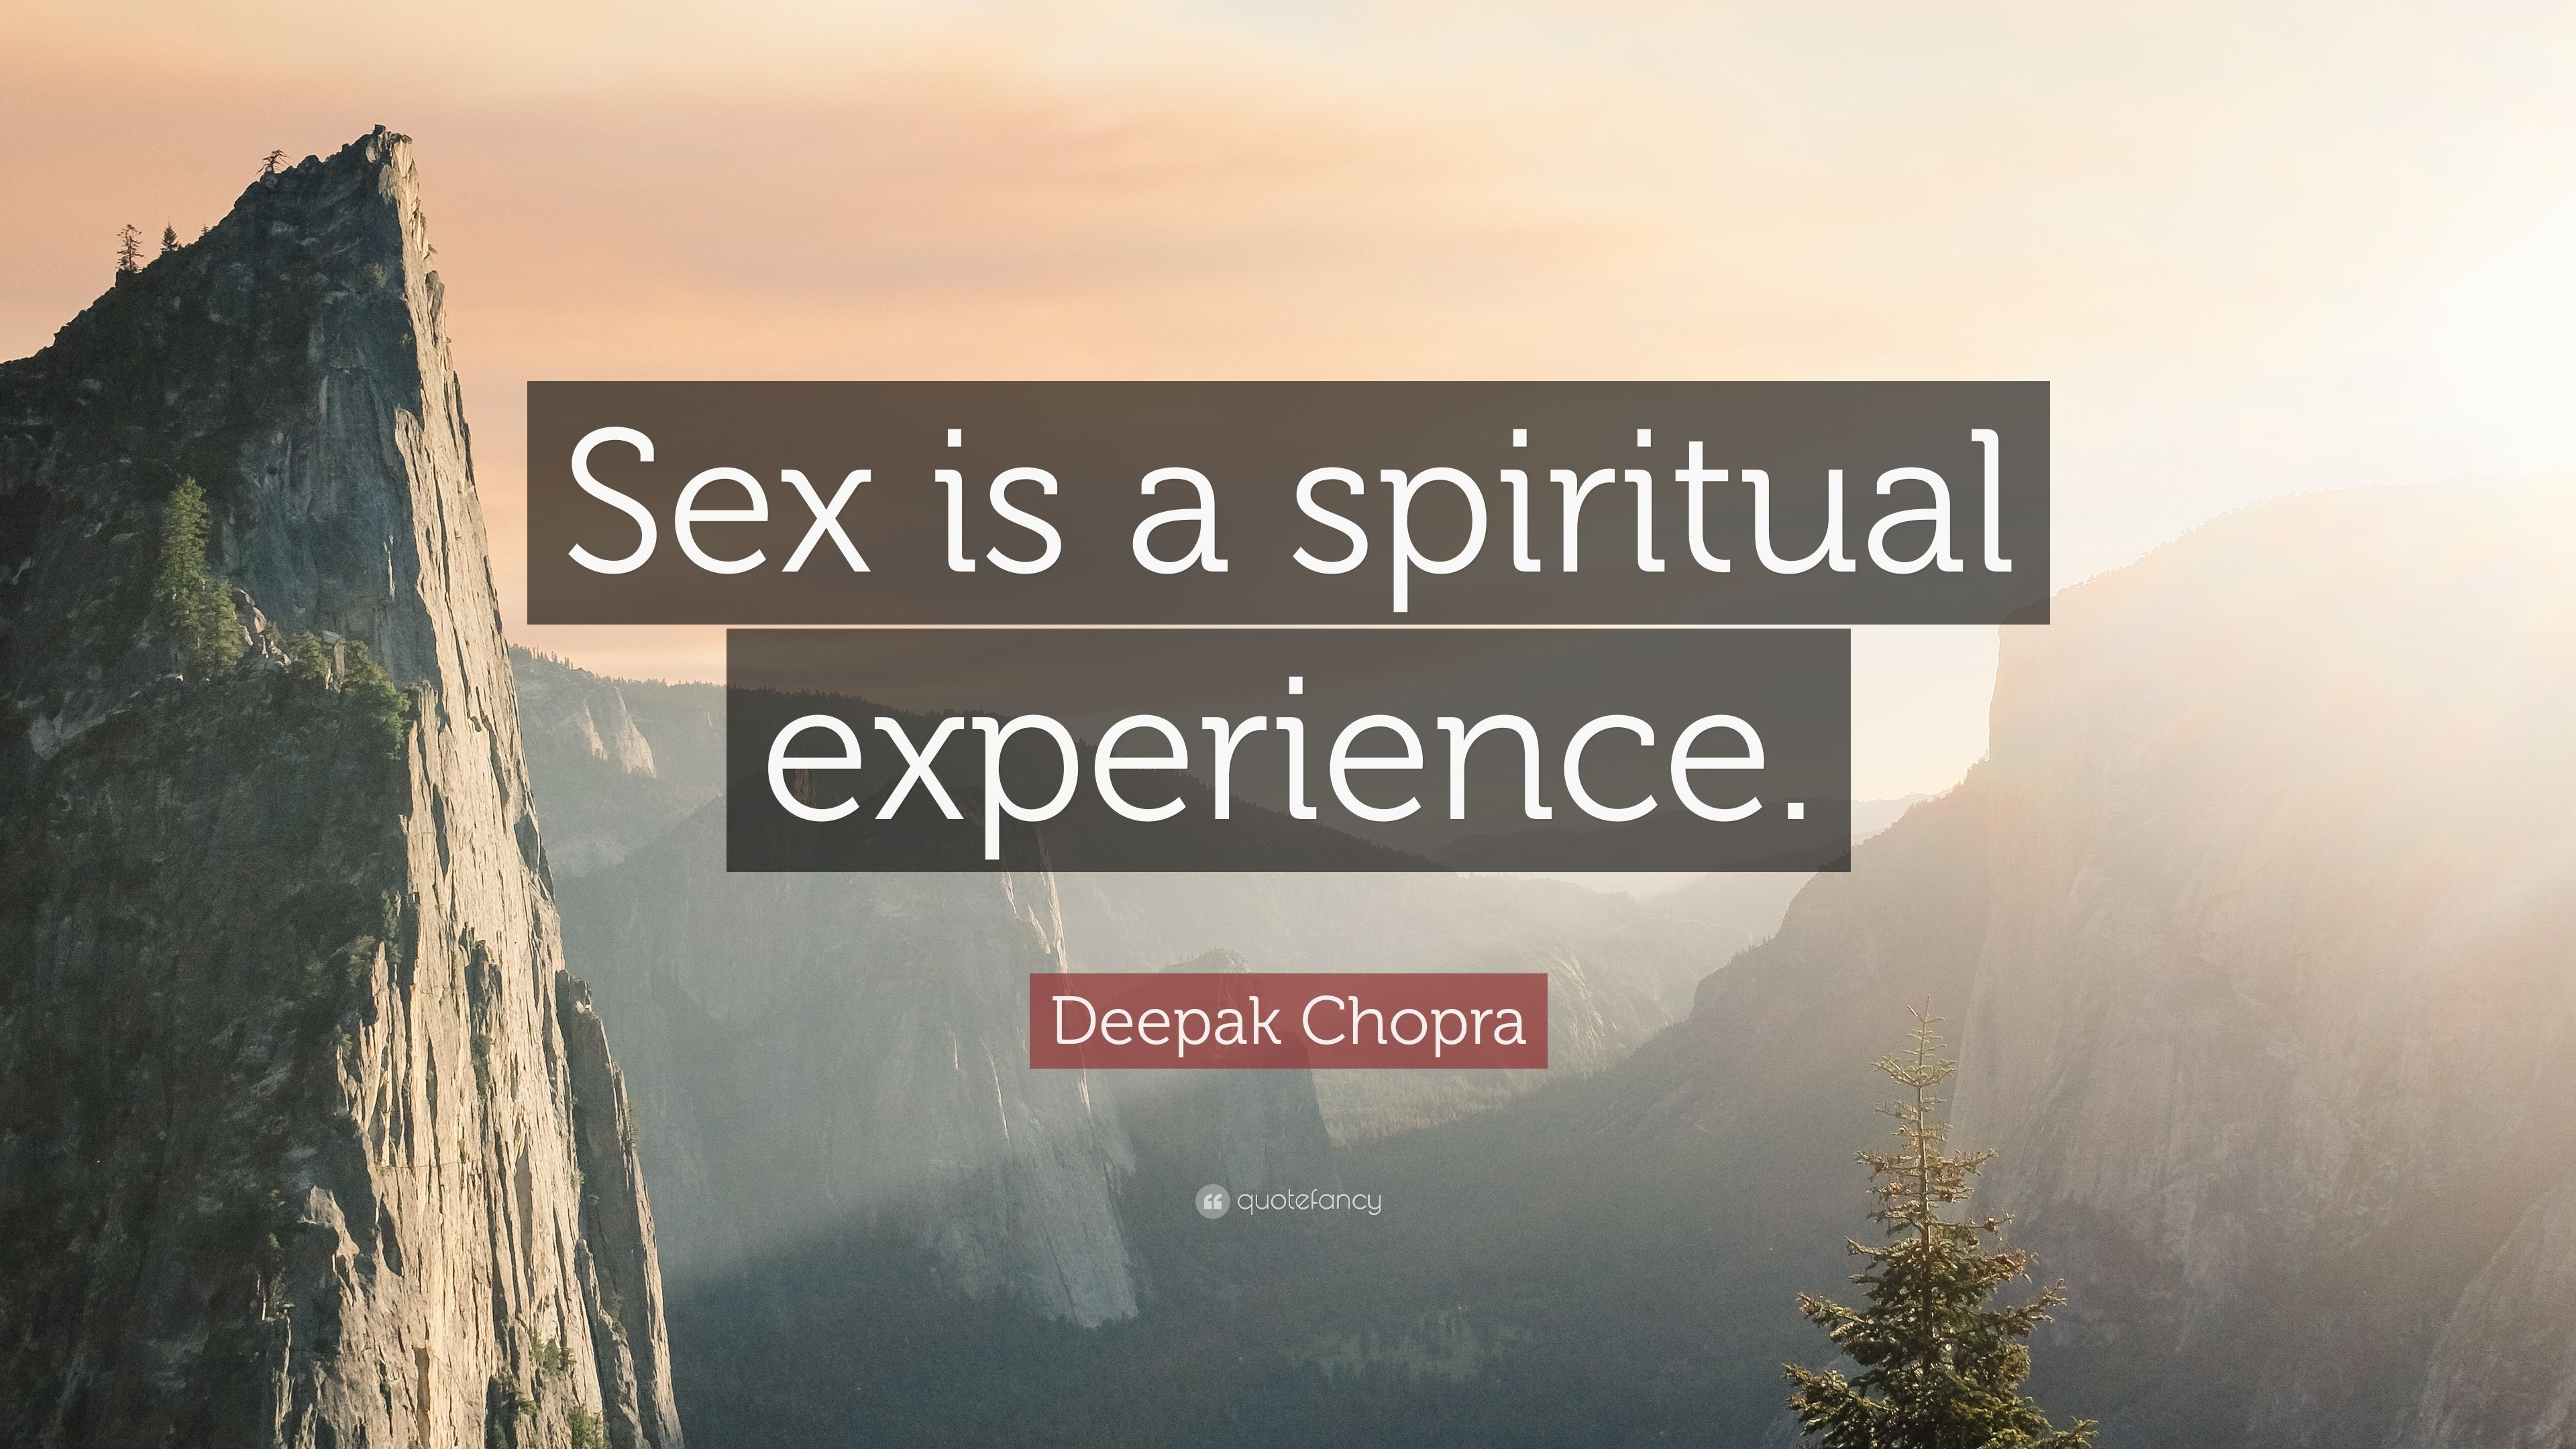 Sex is a spiritual experience